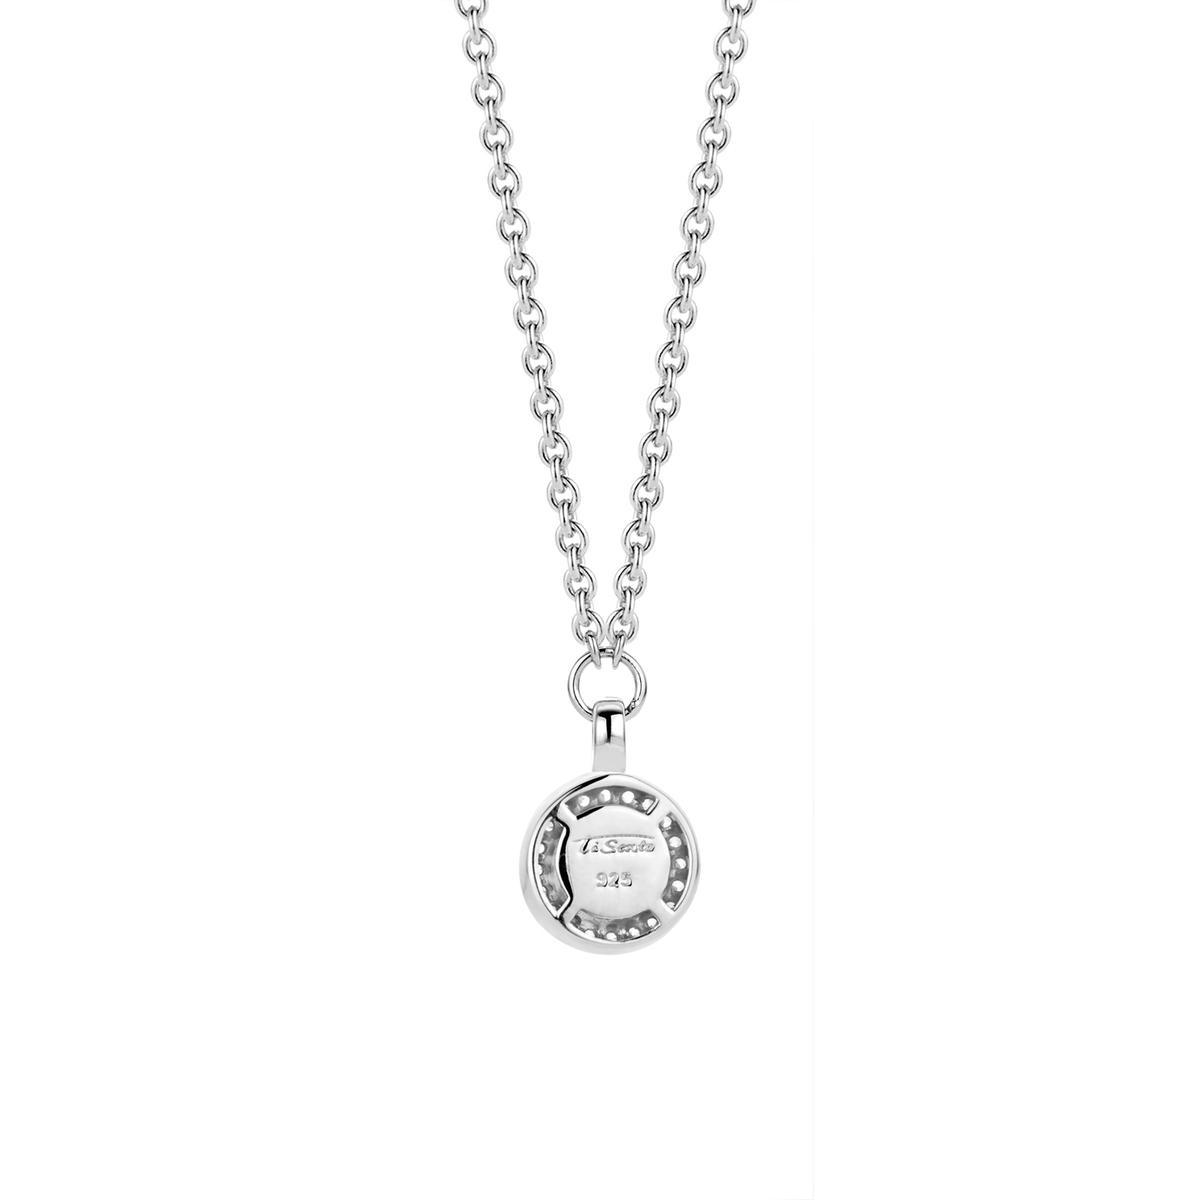 TI SENTO - Milano Necklace 3778ZI